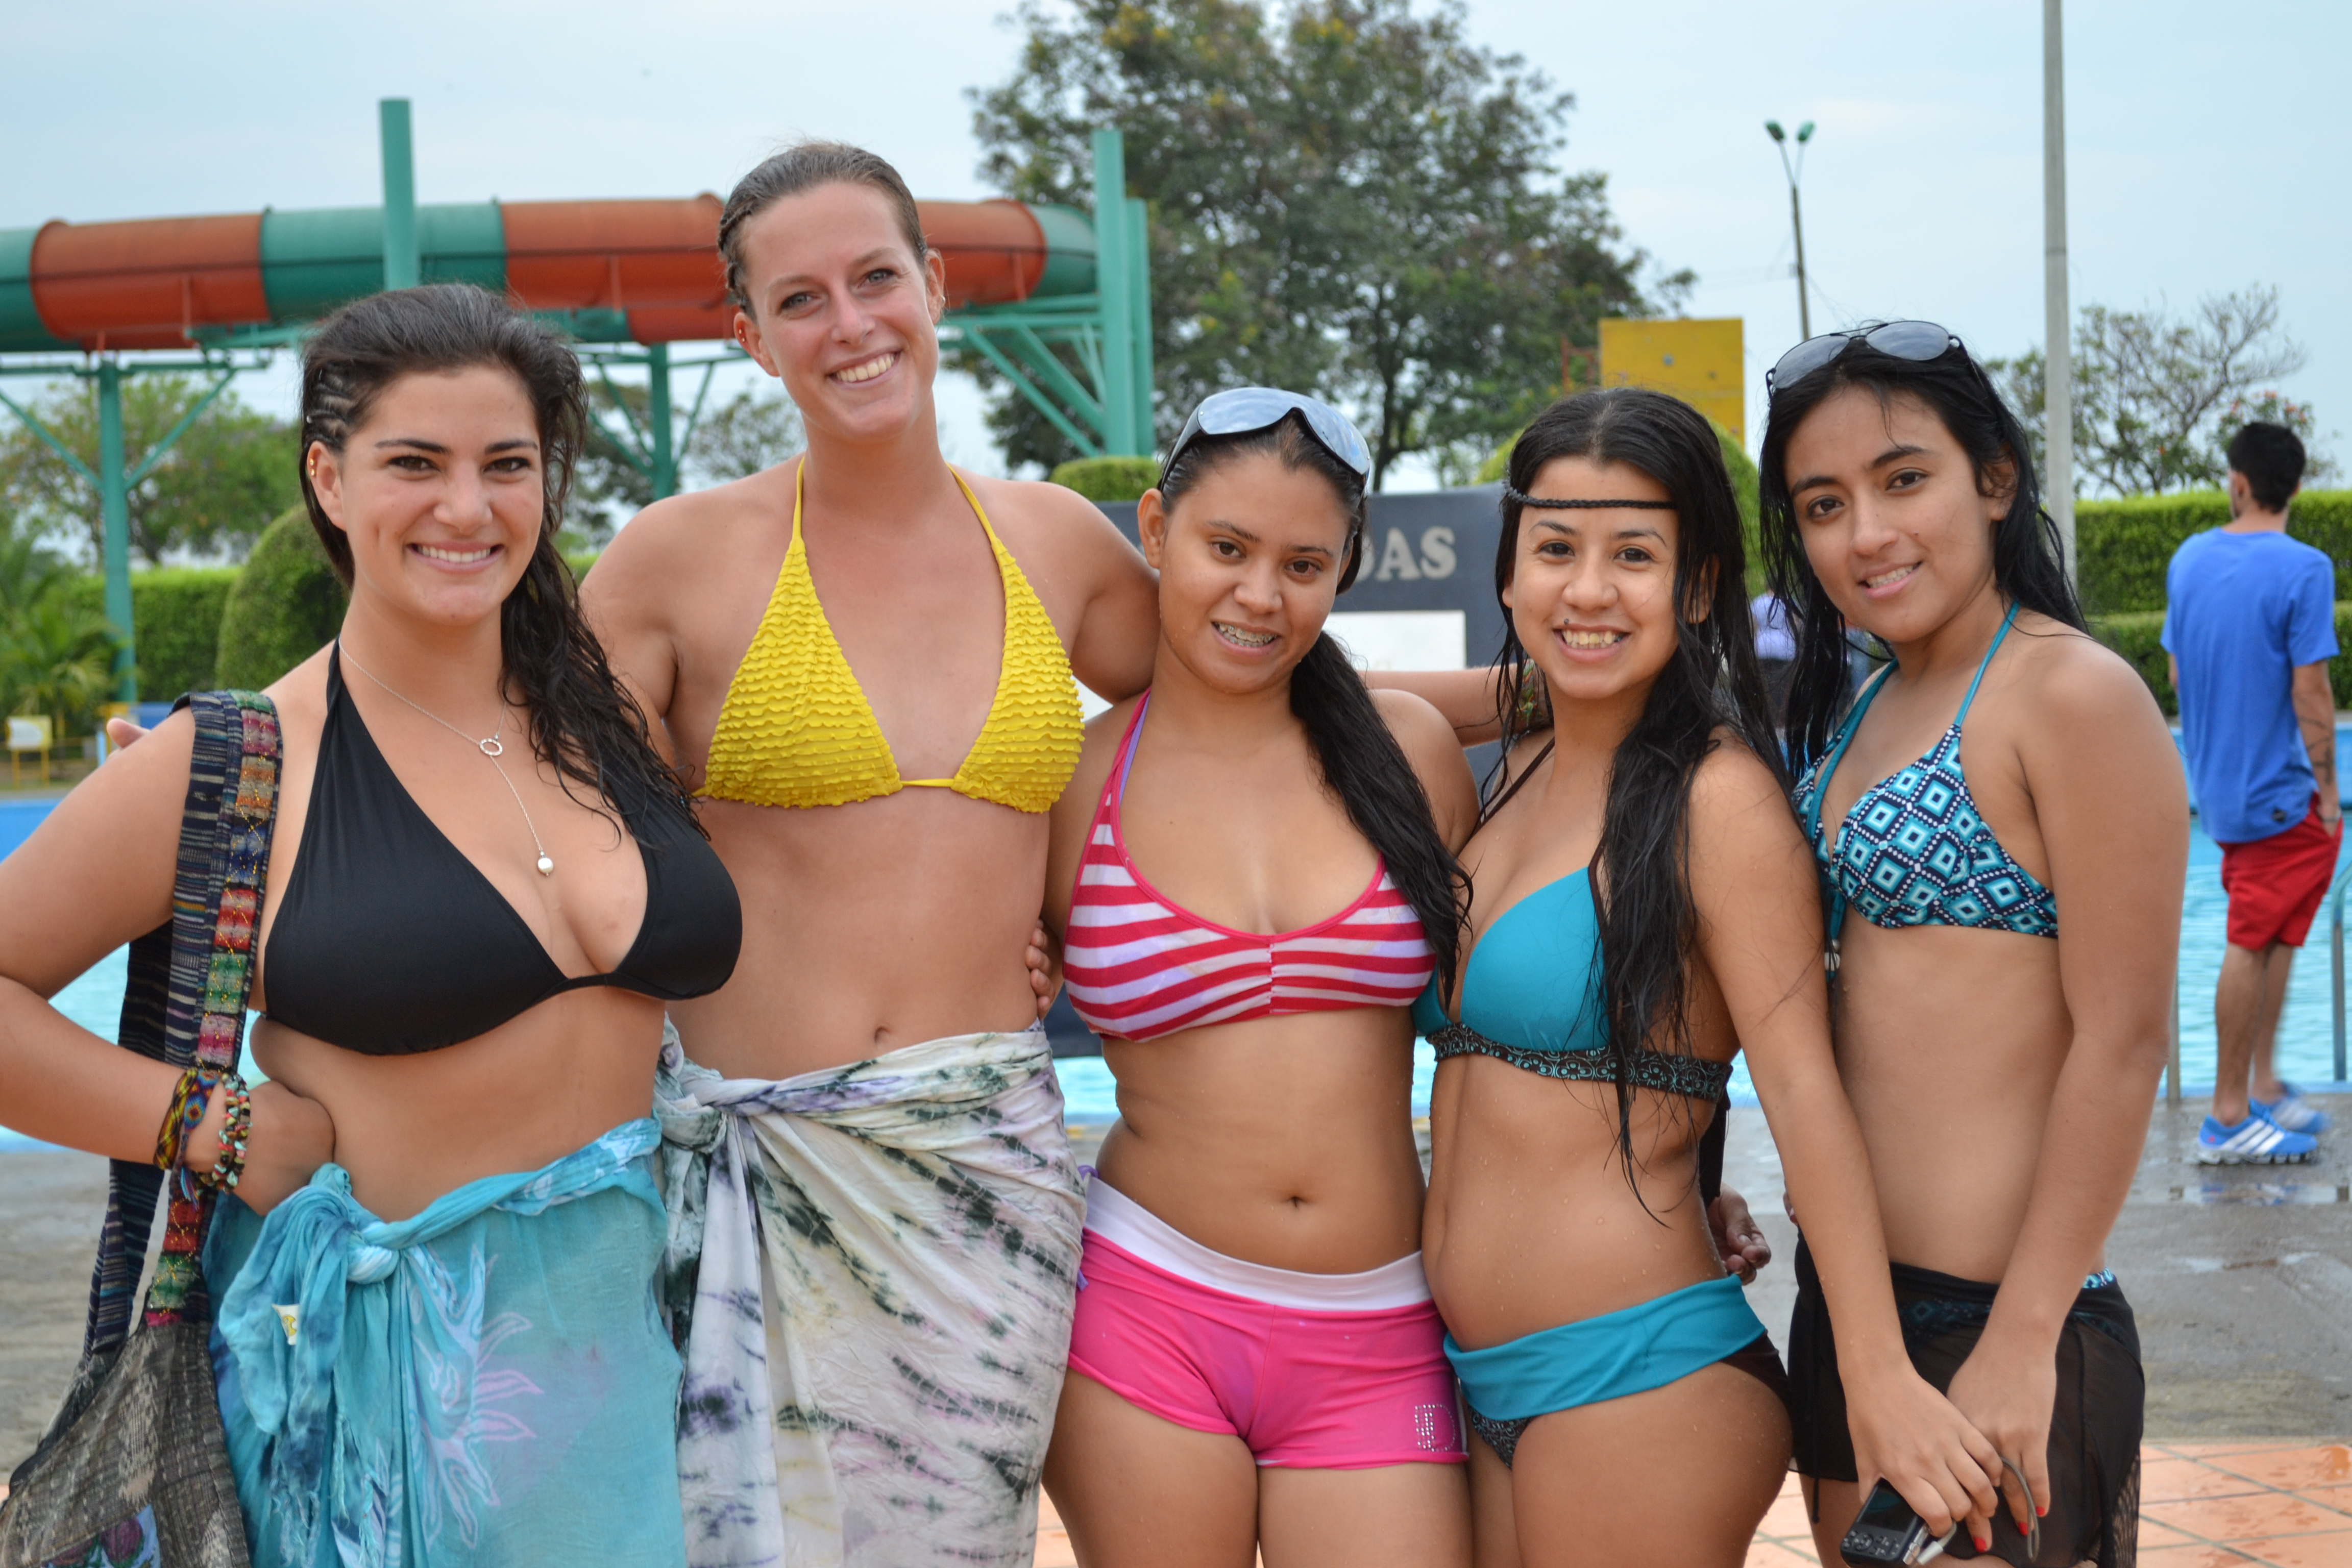 Waterpark Flashing Videos Travel Pictures